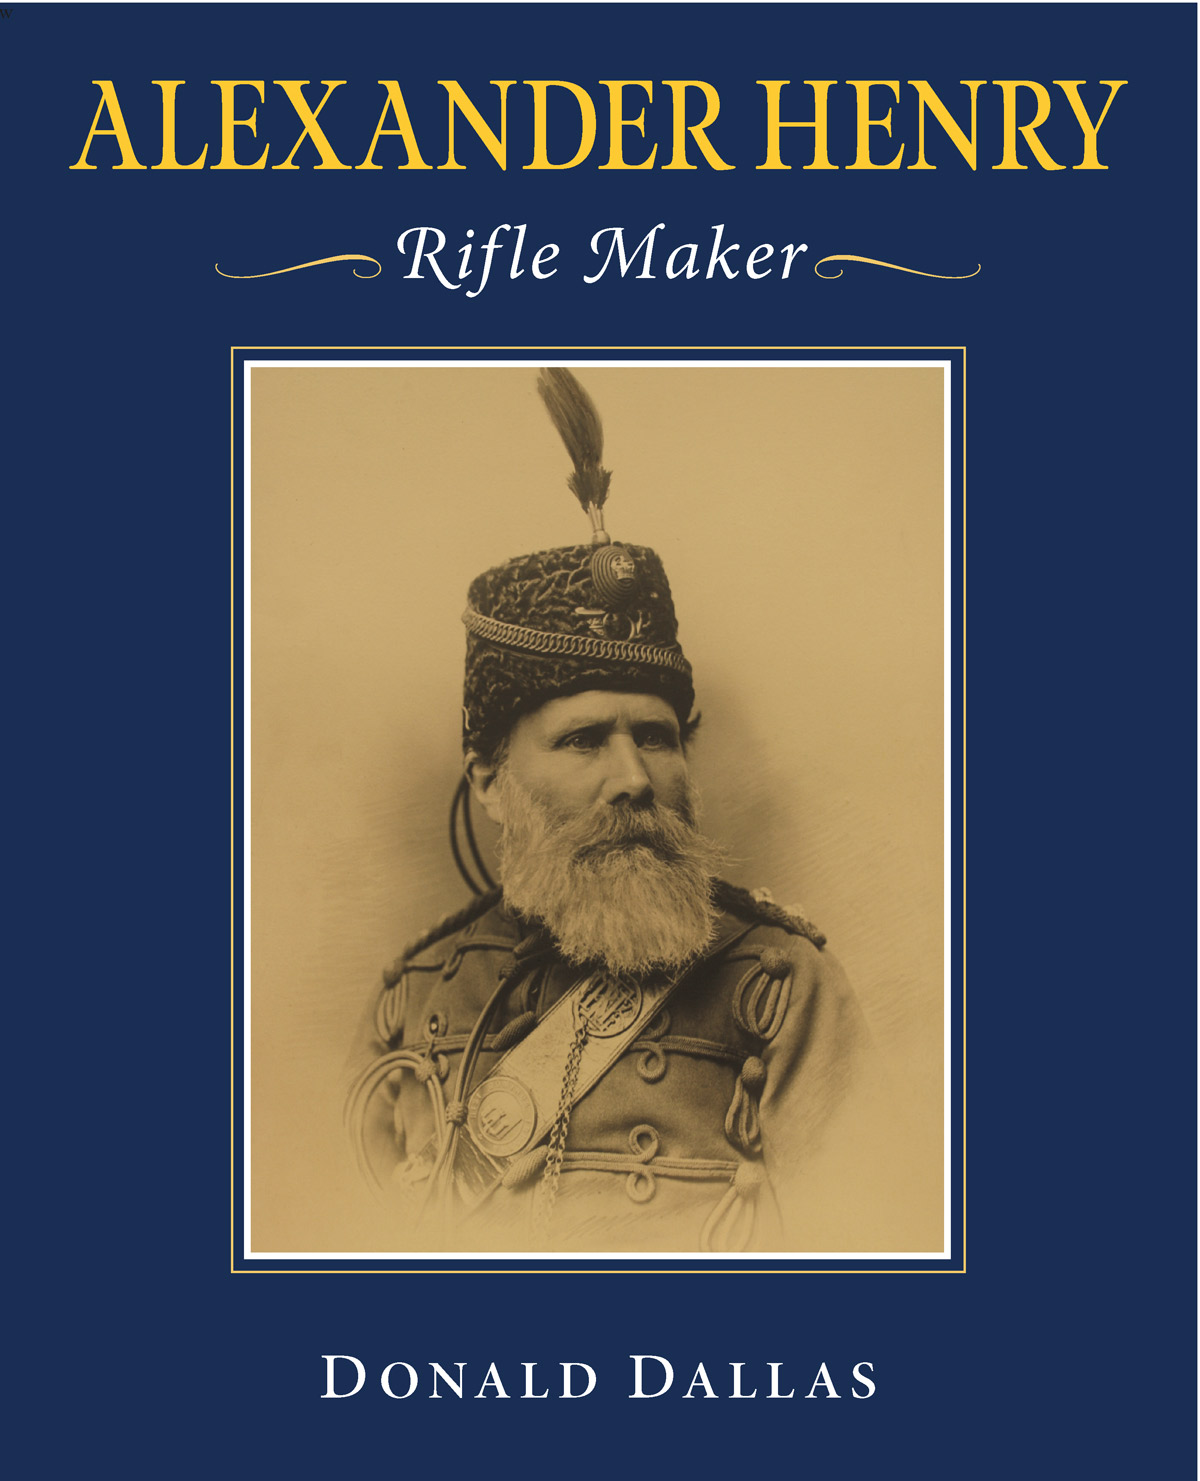 'Alexander Henry - Rifle Maker' By Donald Dallas